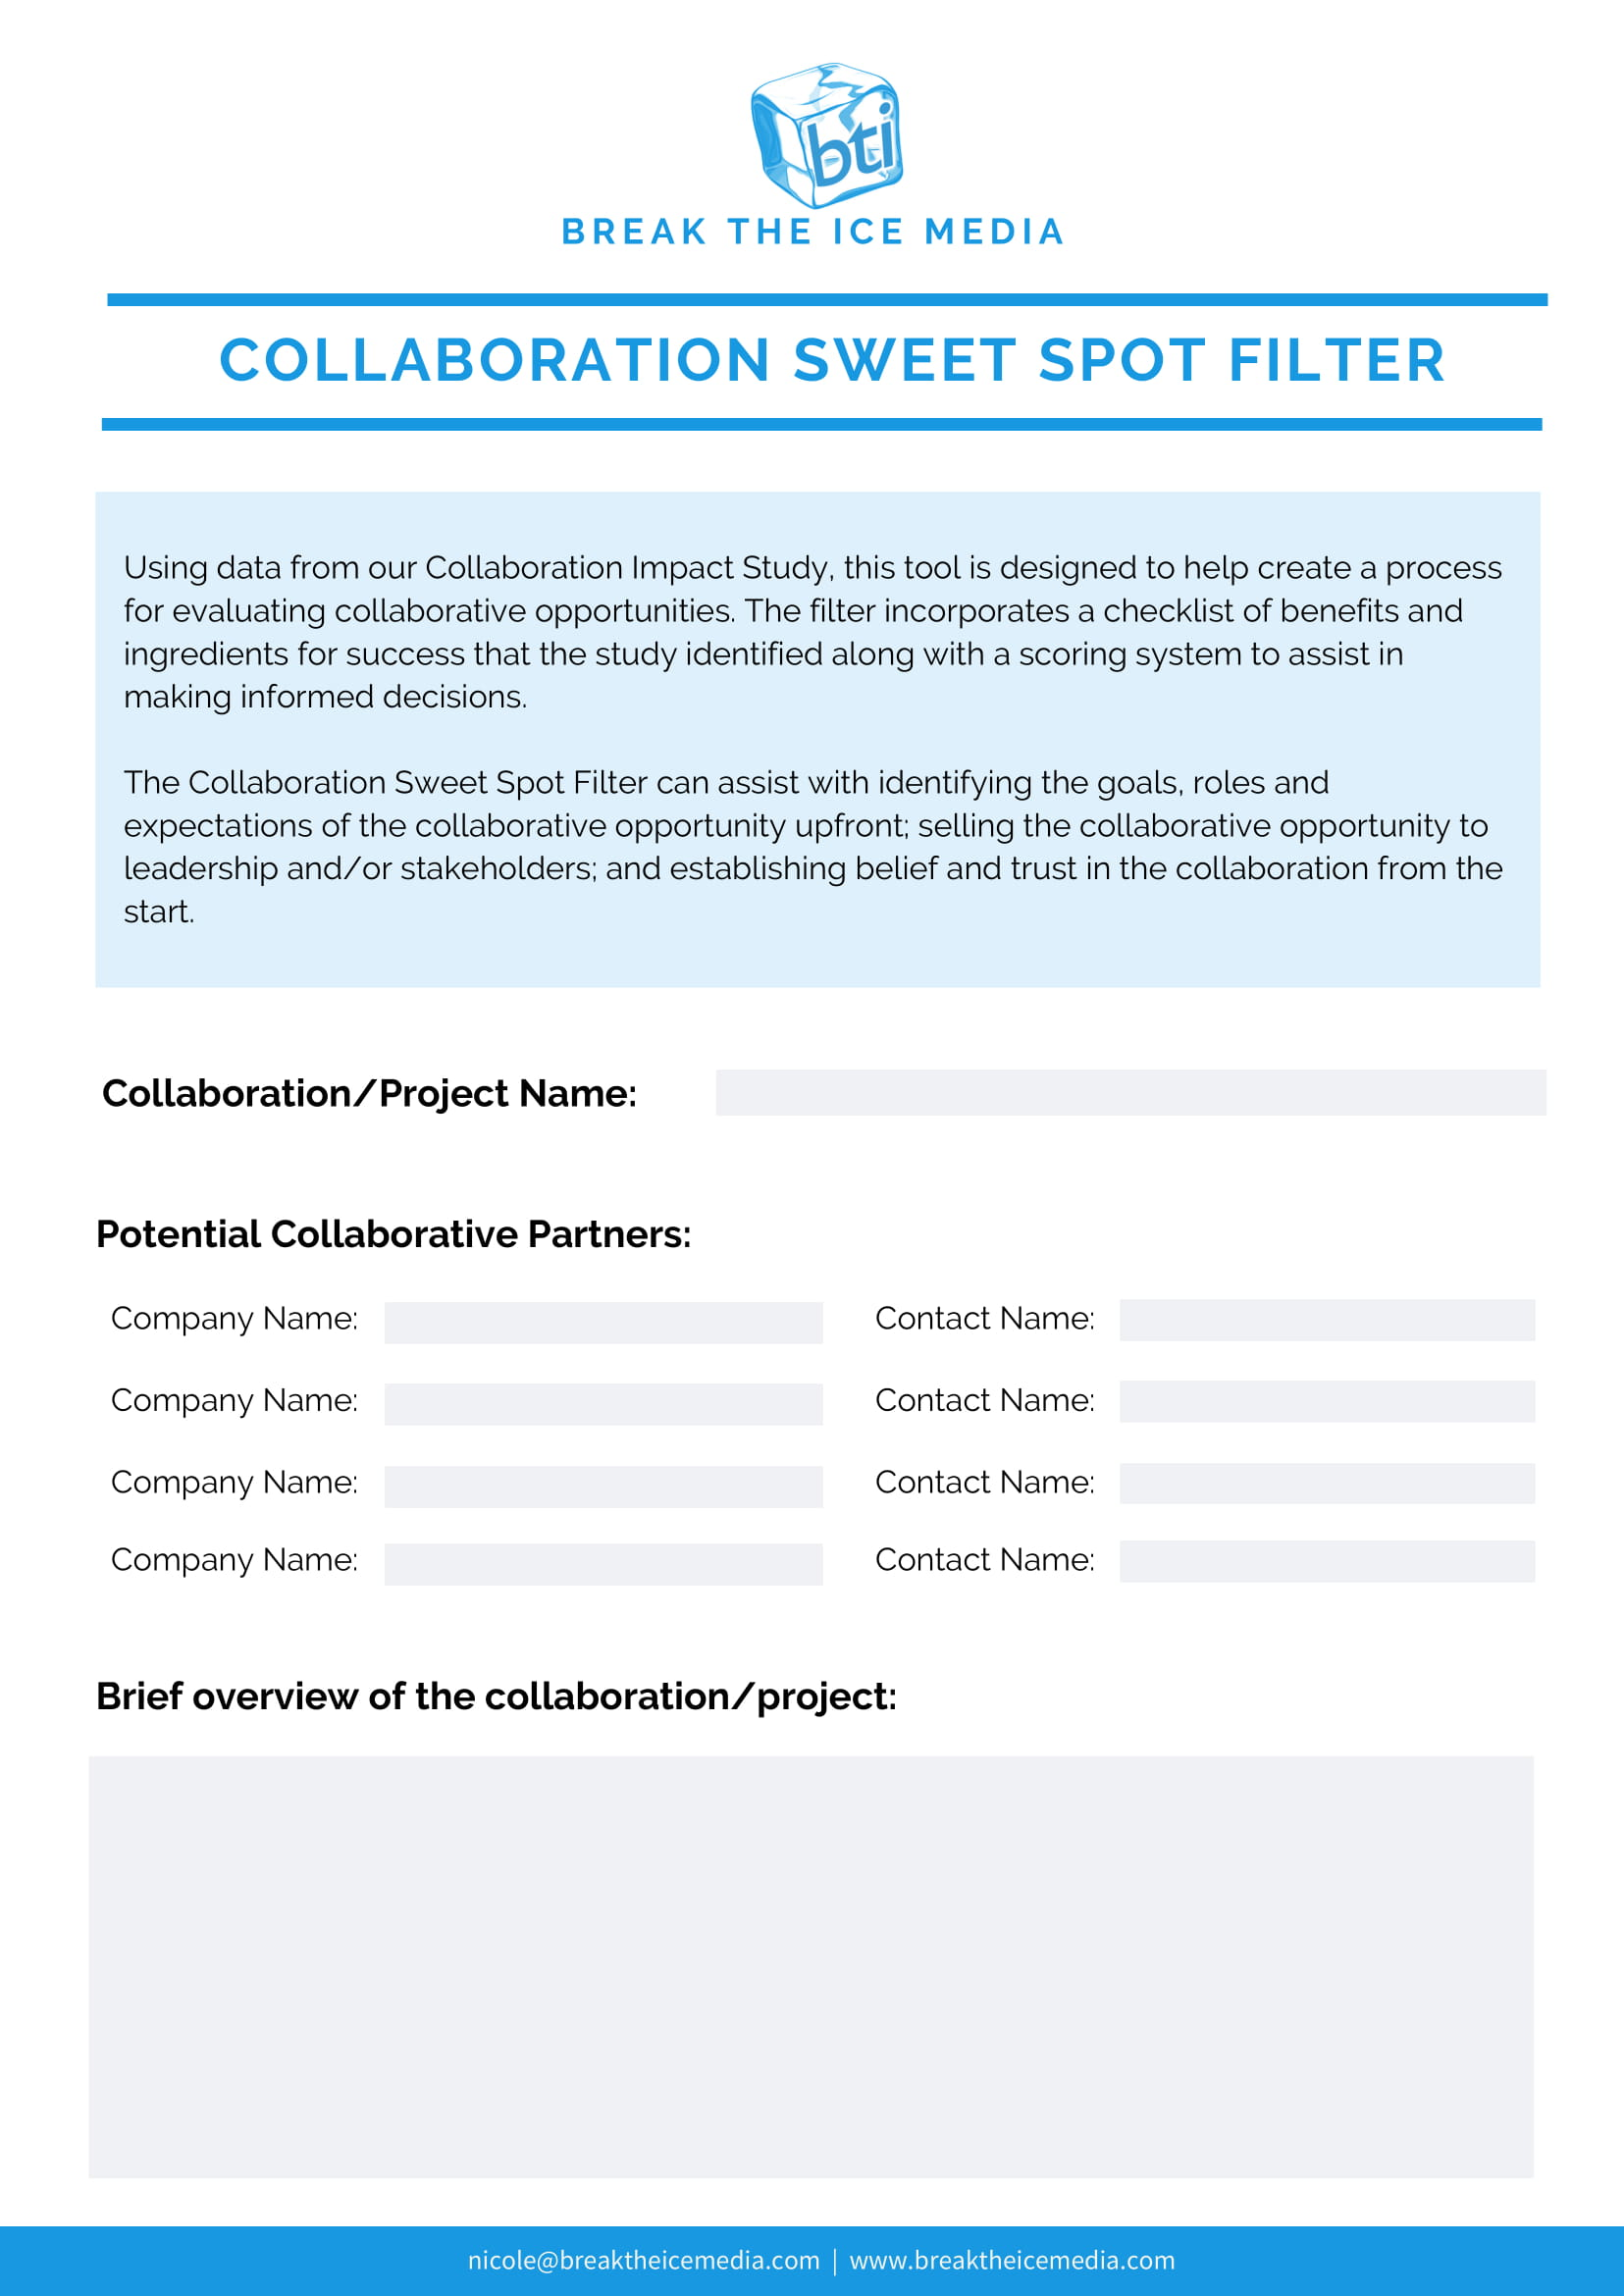 Collaboration Sweet Spot Filter-1